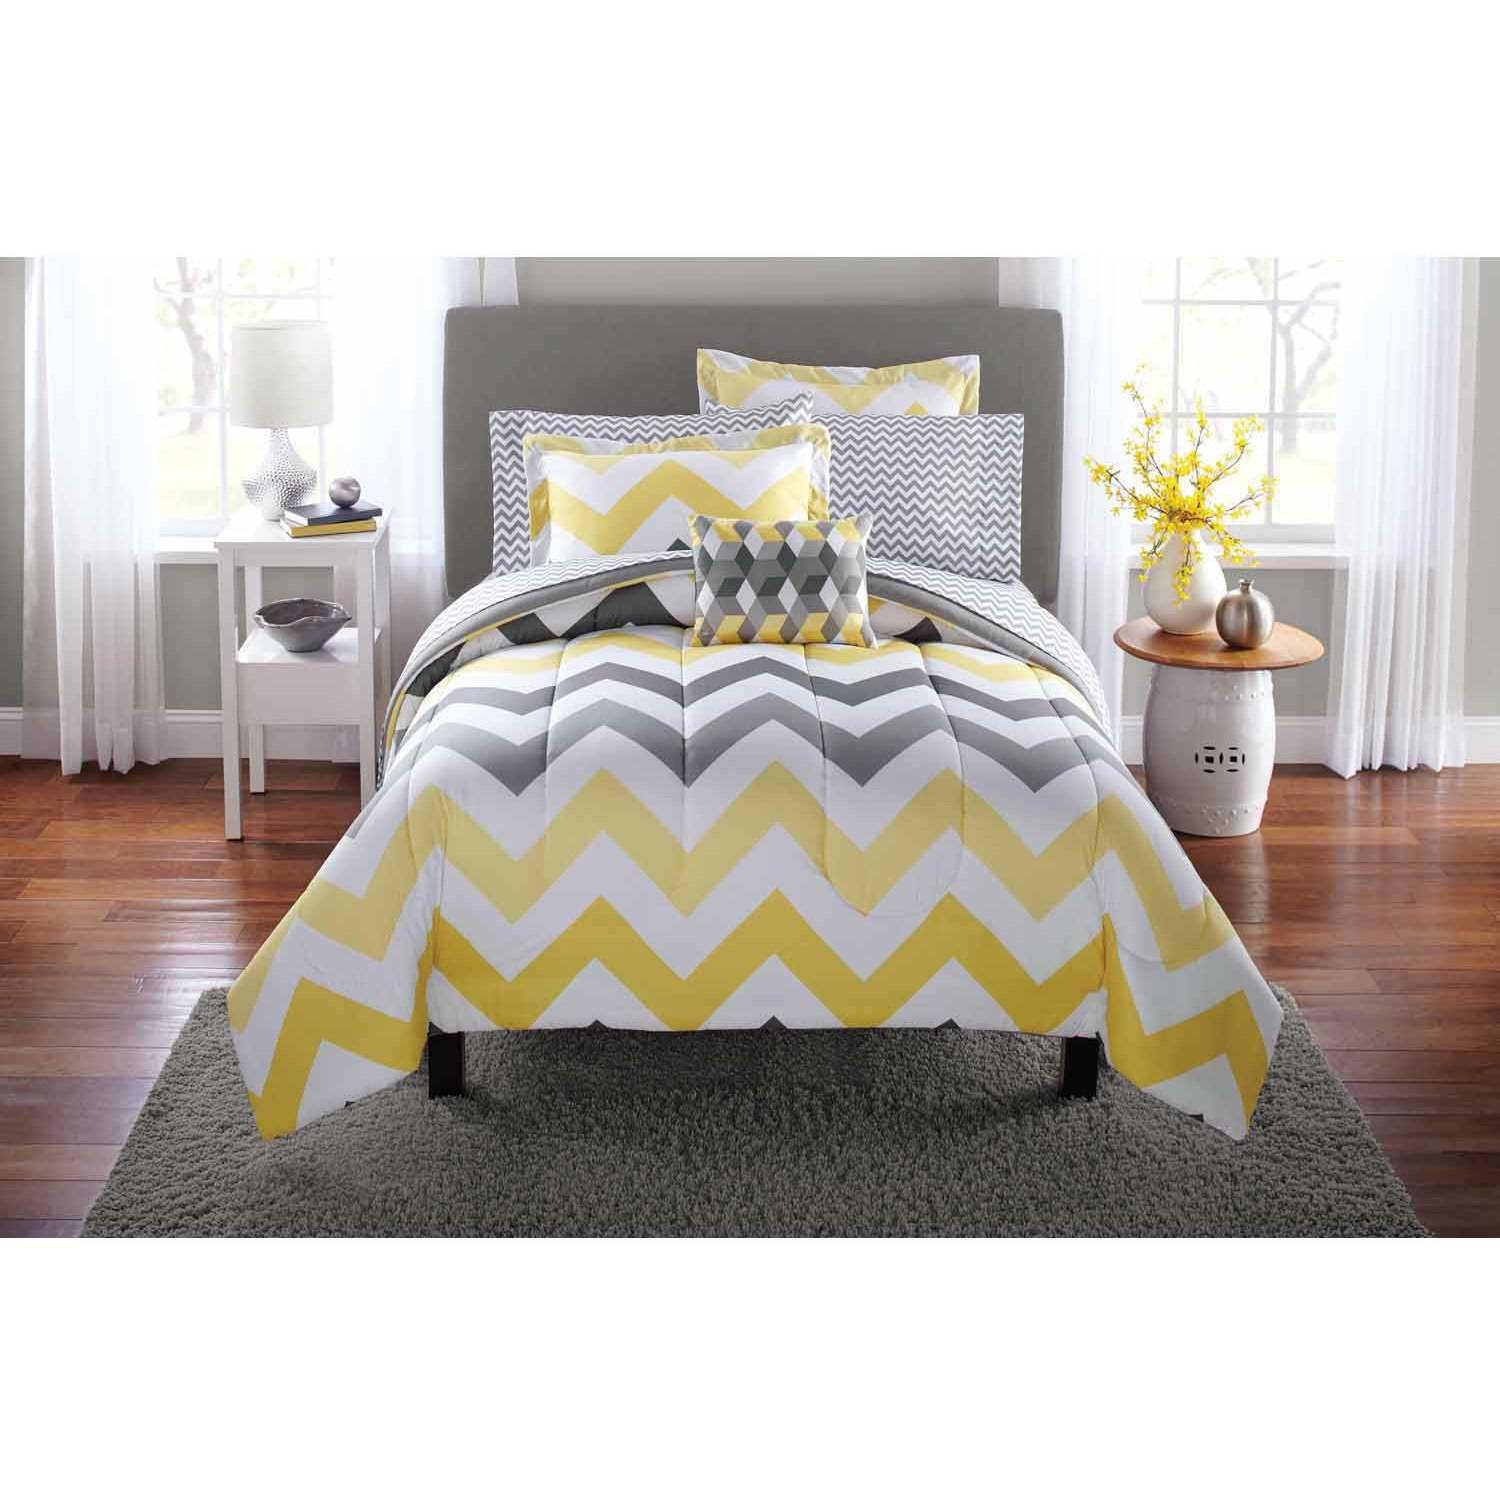 Mainstays Yellow Grey Chevron Bed in a Bag Bedding Comforter Set – Bedding for Gray Bedroom